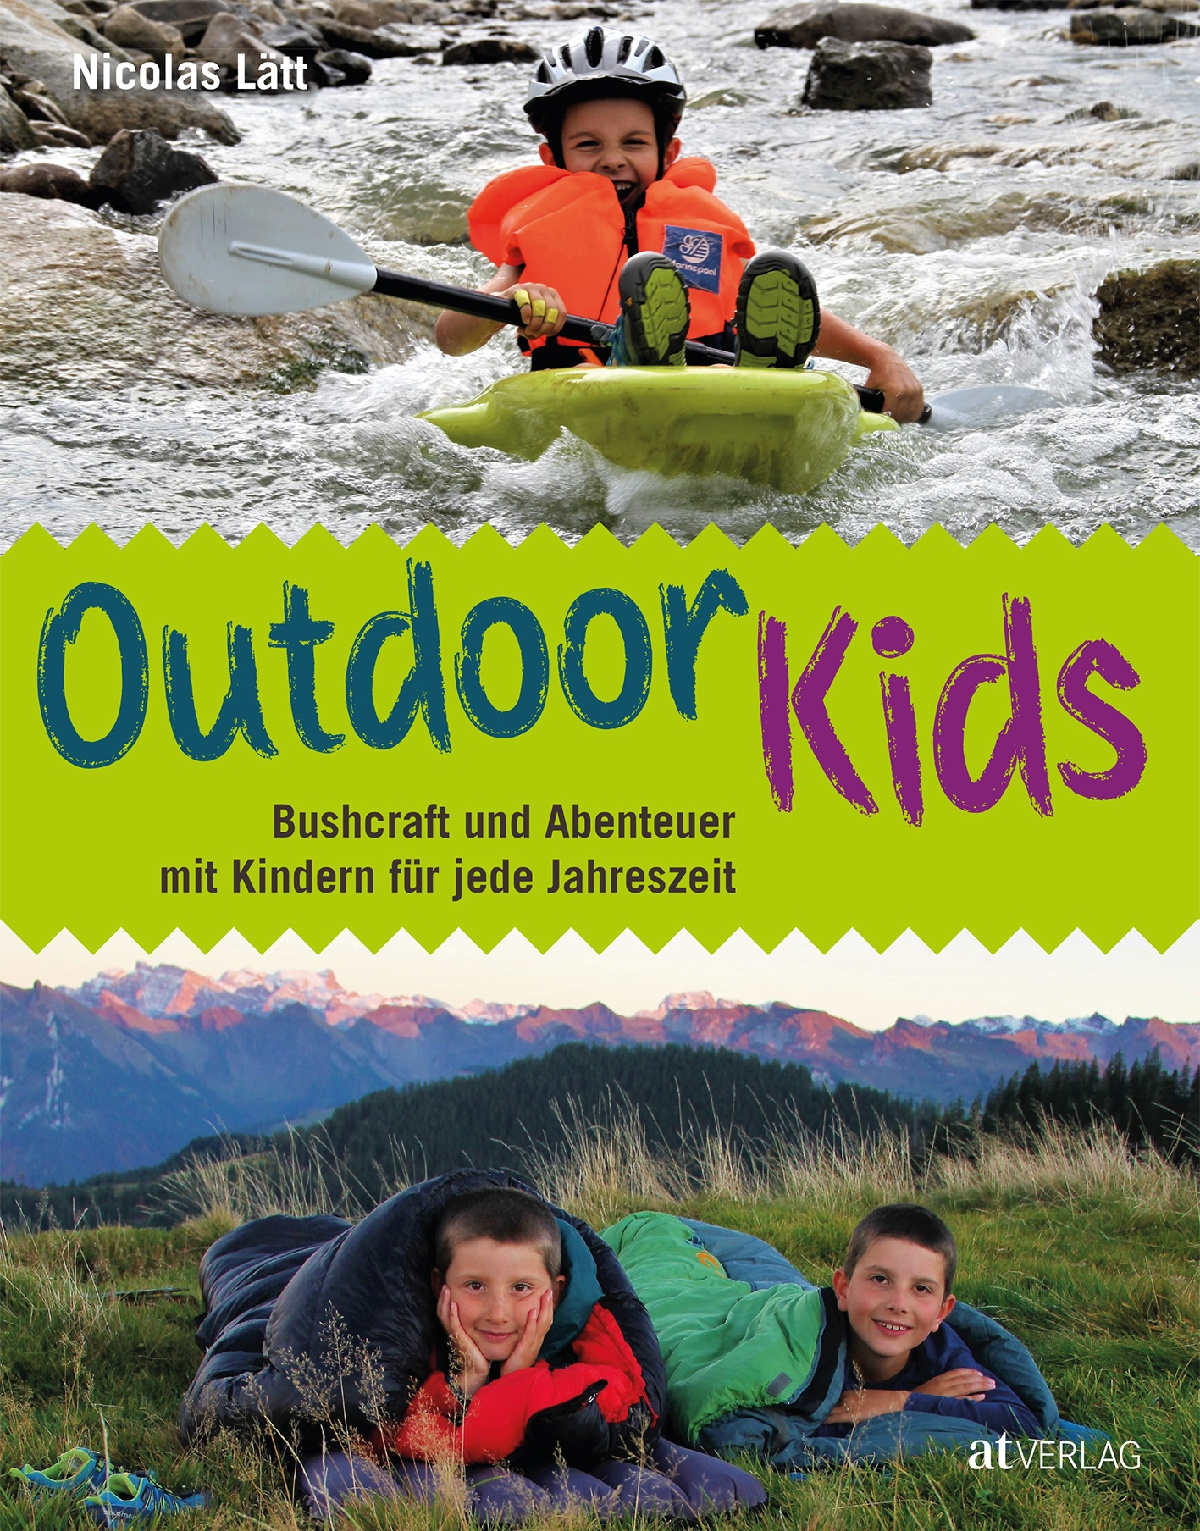 Outdoor Kinder Buch Outdoor Kids Von Nicolas Lätt At Verlag